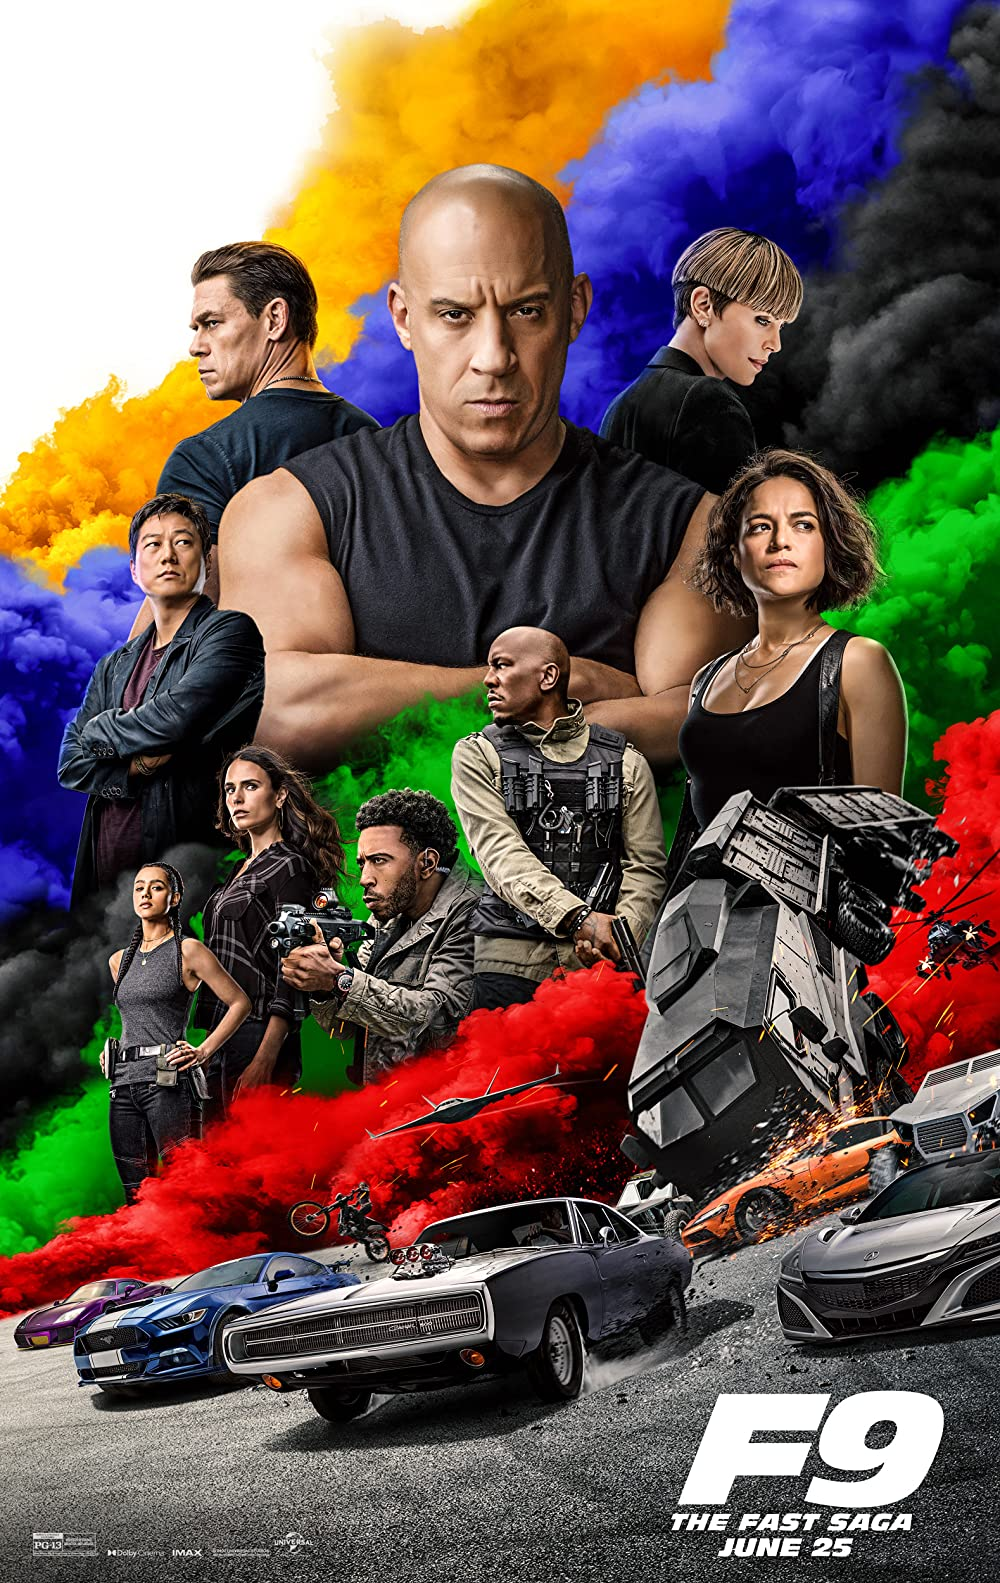 Fast & Furious 9 2021 Hindi Dubbed Official Trailer 2 1080p HDRip Download